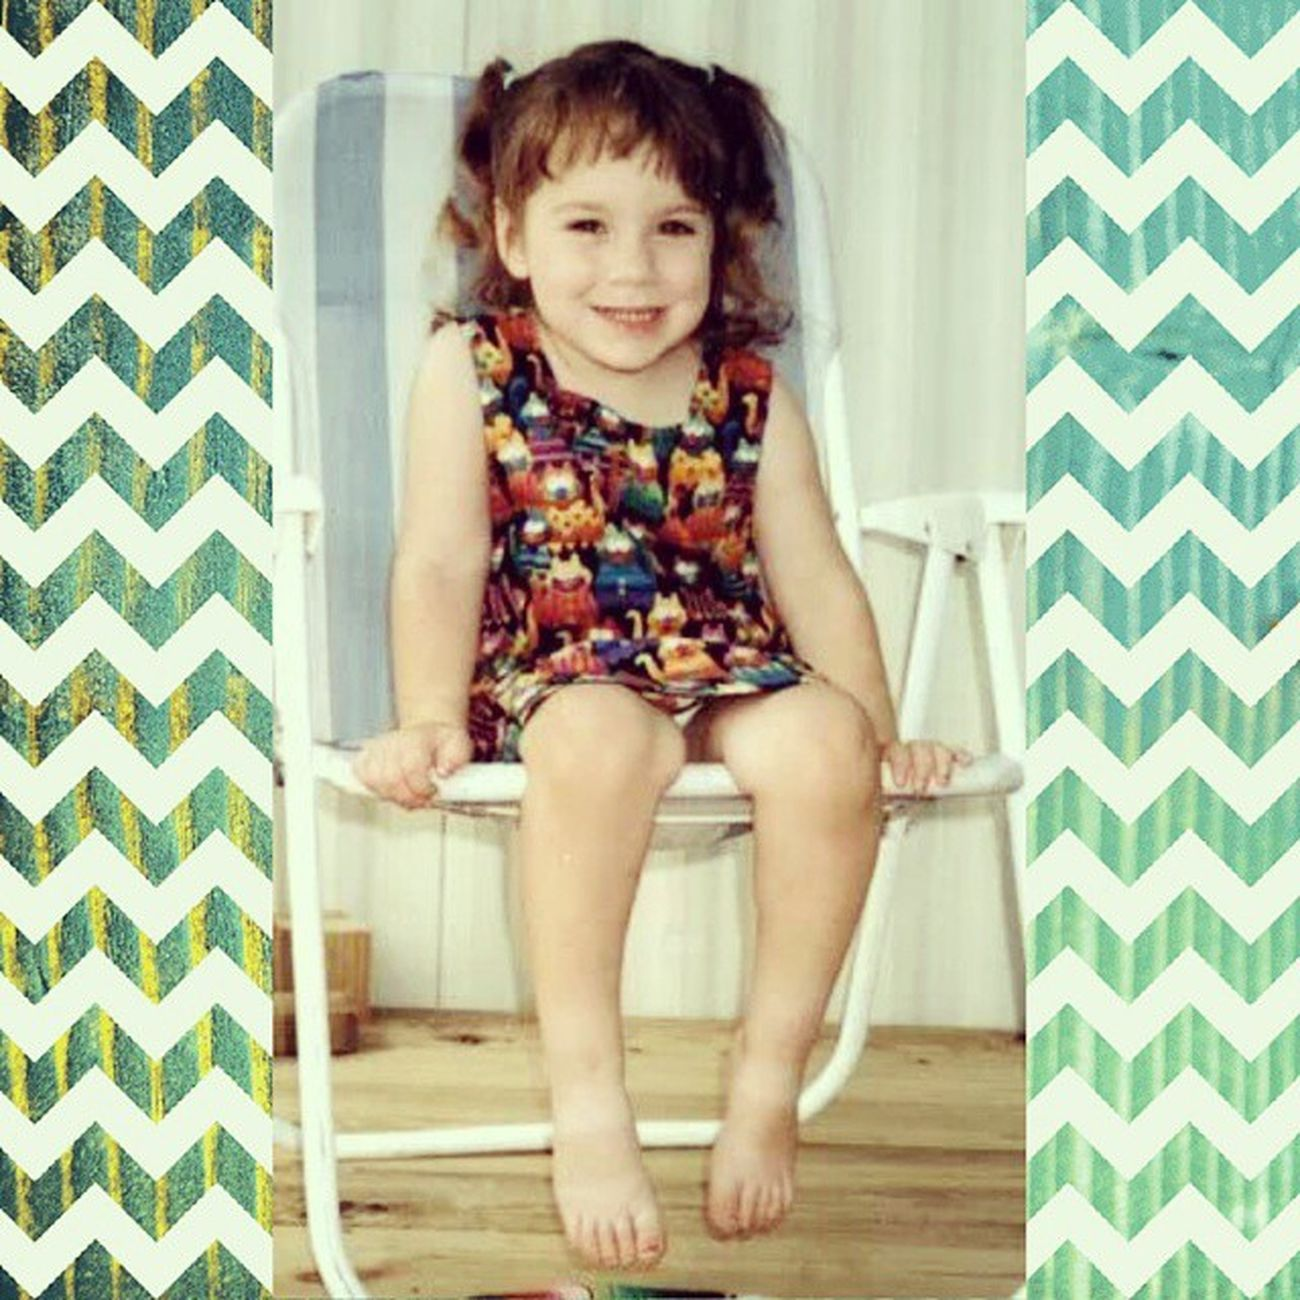 TransformationTuesday (; I was a chunky little kid.... mom made all my dresses, I liked being barefoot & playing in the dirt with a spoon. ♡ now, I still play in the dirt (; and my momma still takes care of me ♡♡♡♡ Texas Country Bornandraised SunDress